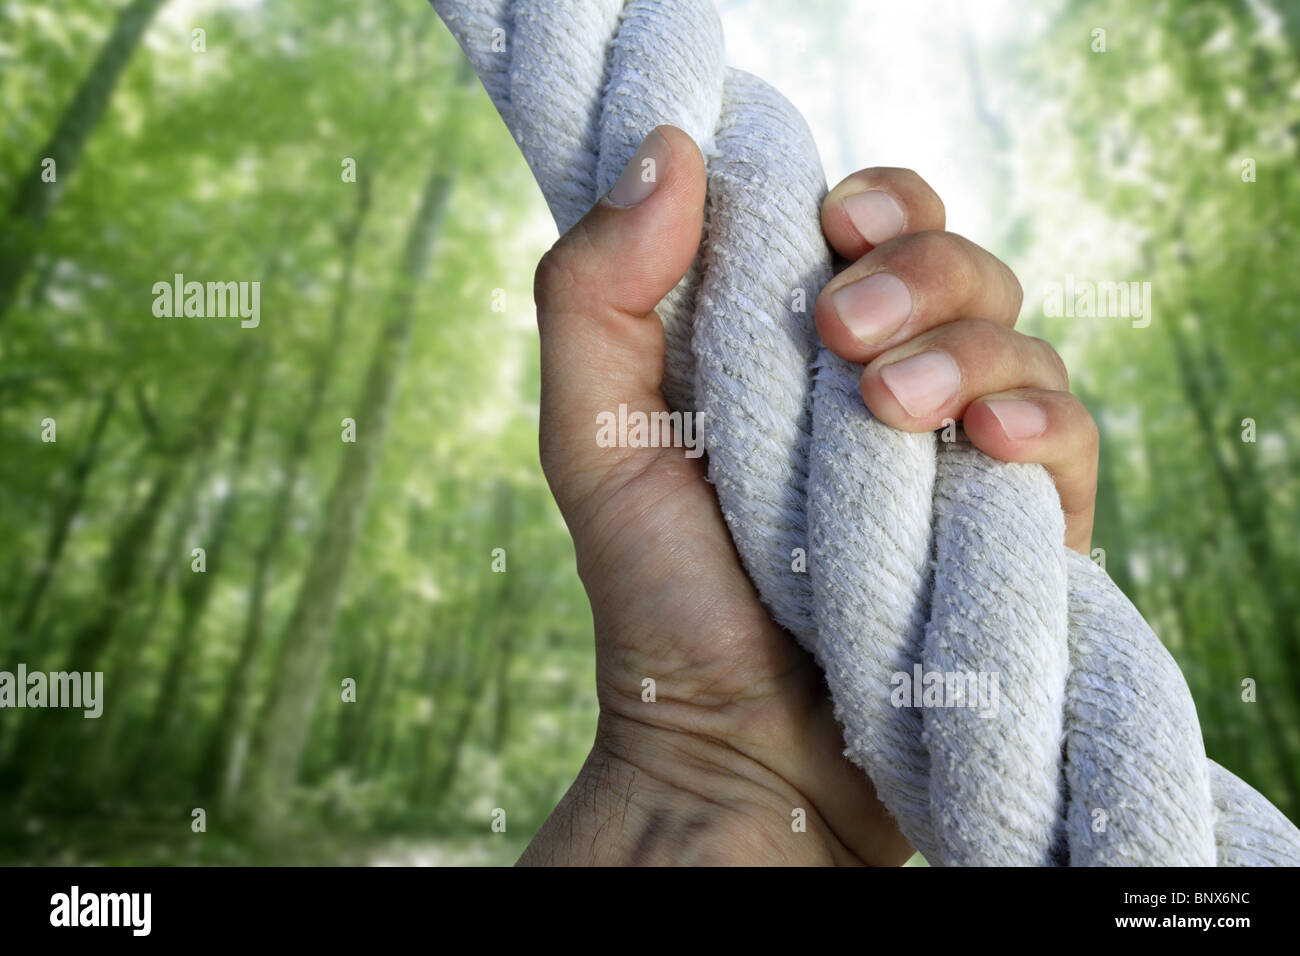 man hand grab grip strong climbing to green forest tree big rope - Stock Image